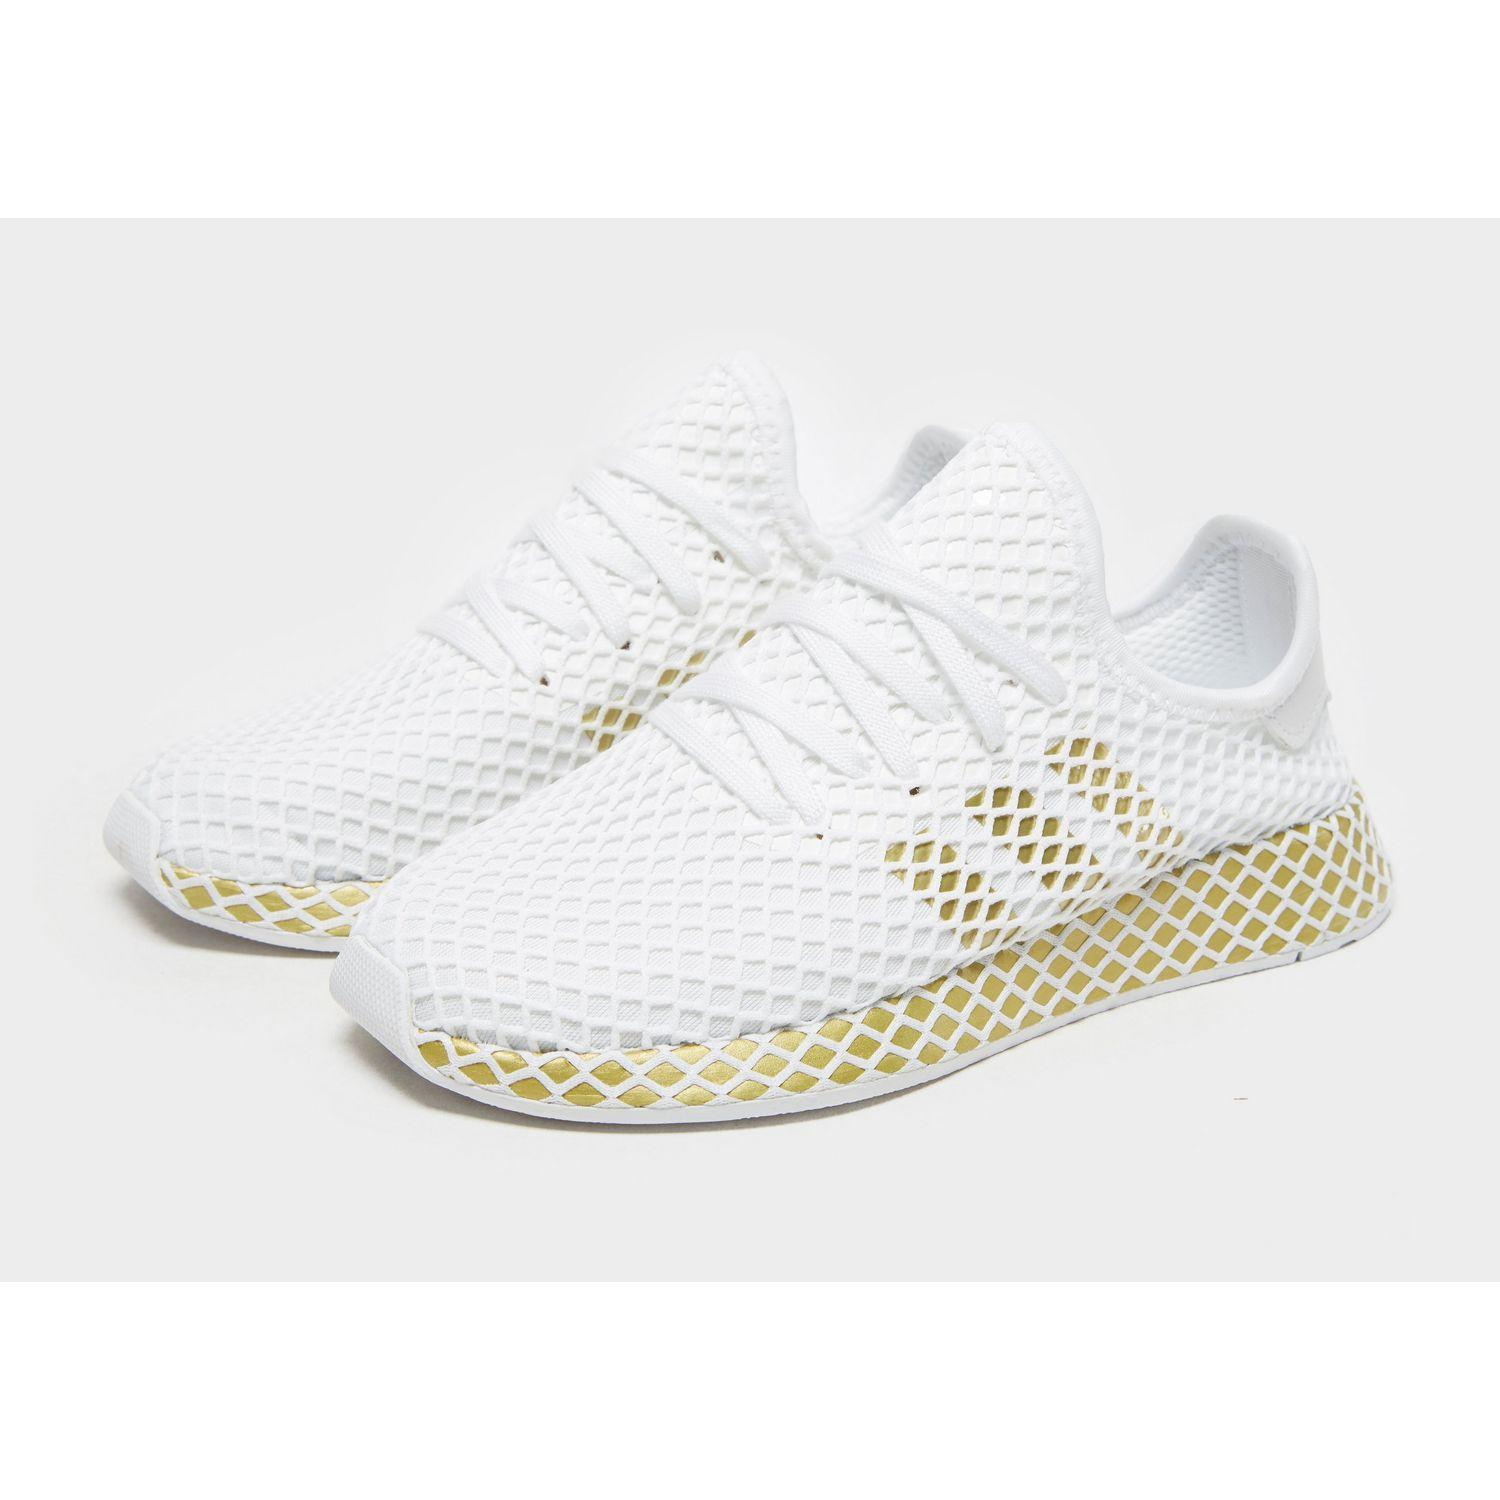 adidas deerupt white and gold